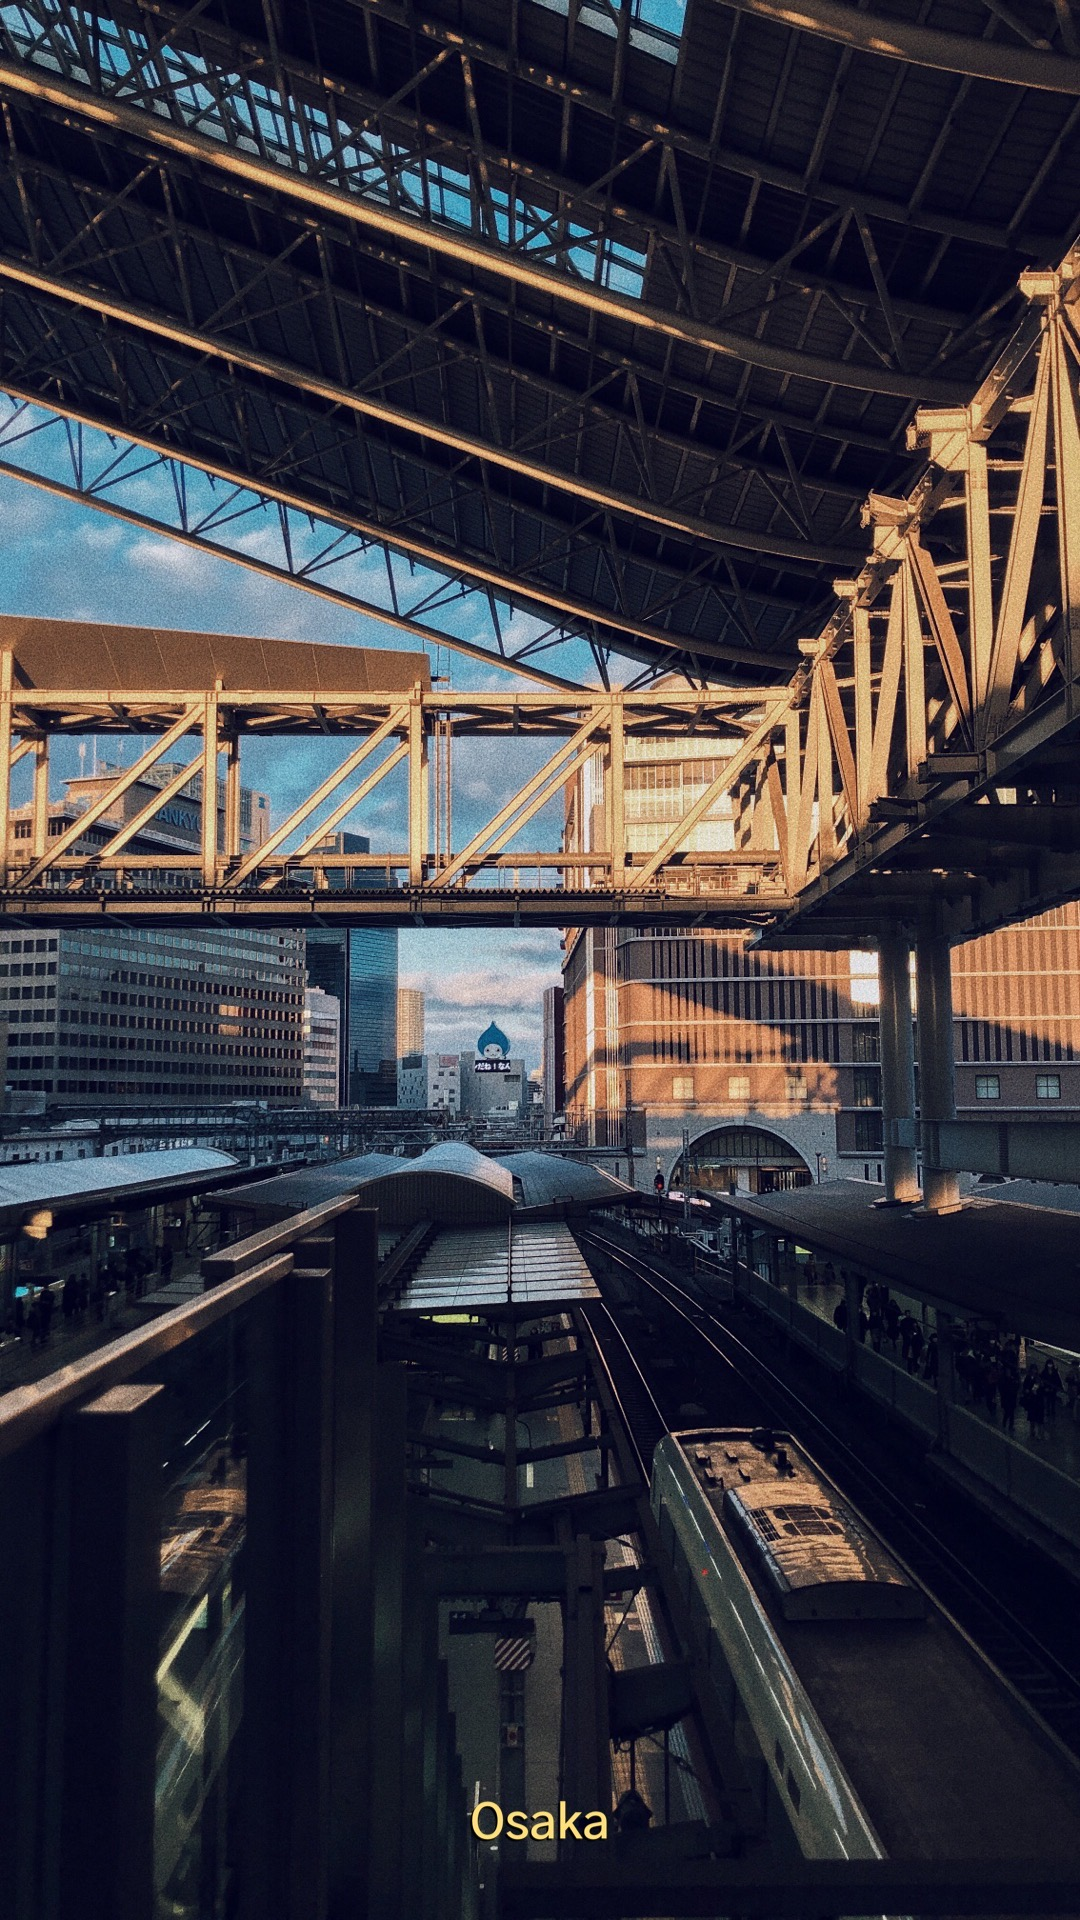 Osaka Station at Sunset